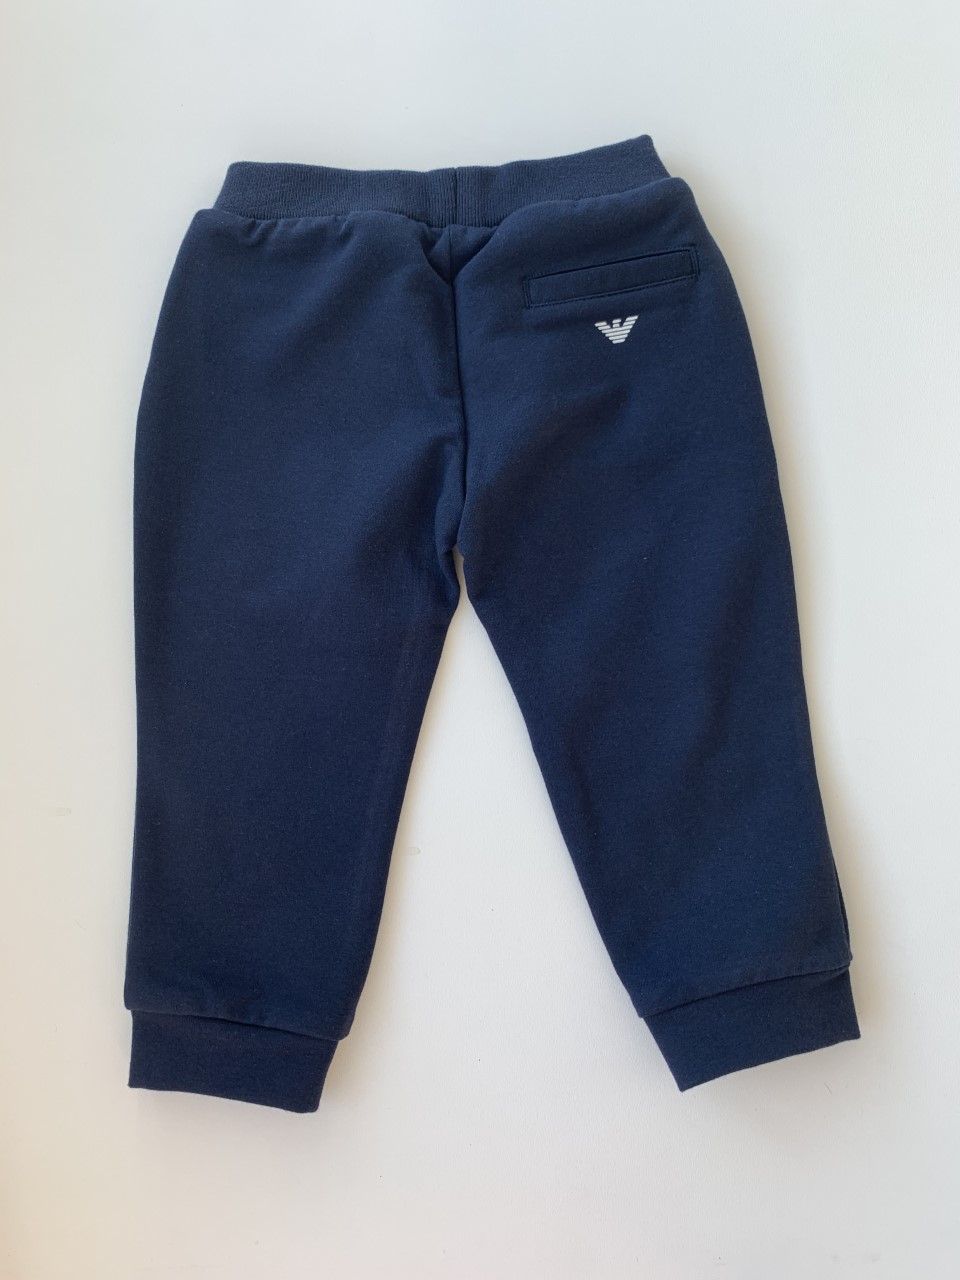 PANTS/Boys   1 year up to 3 years